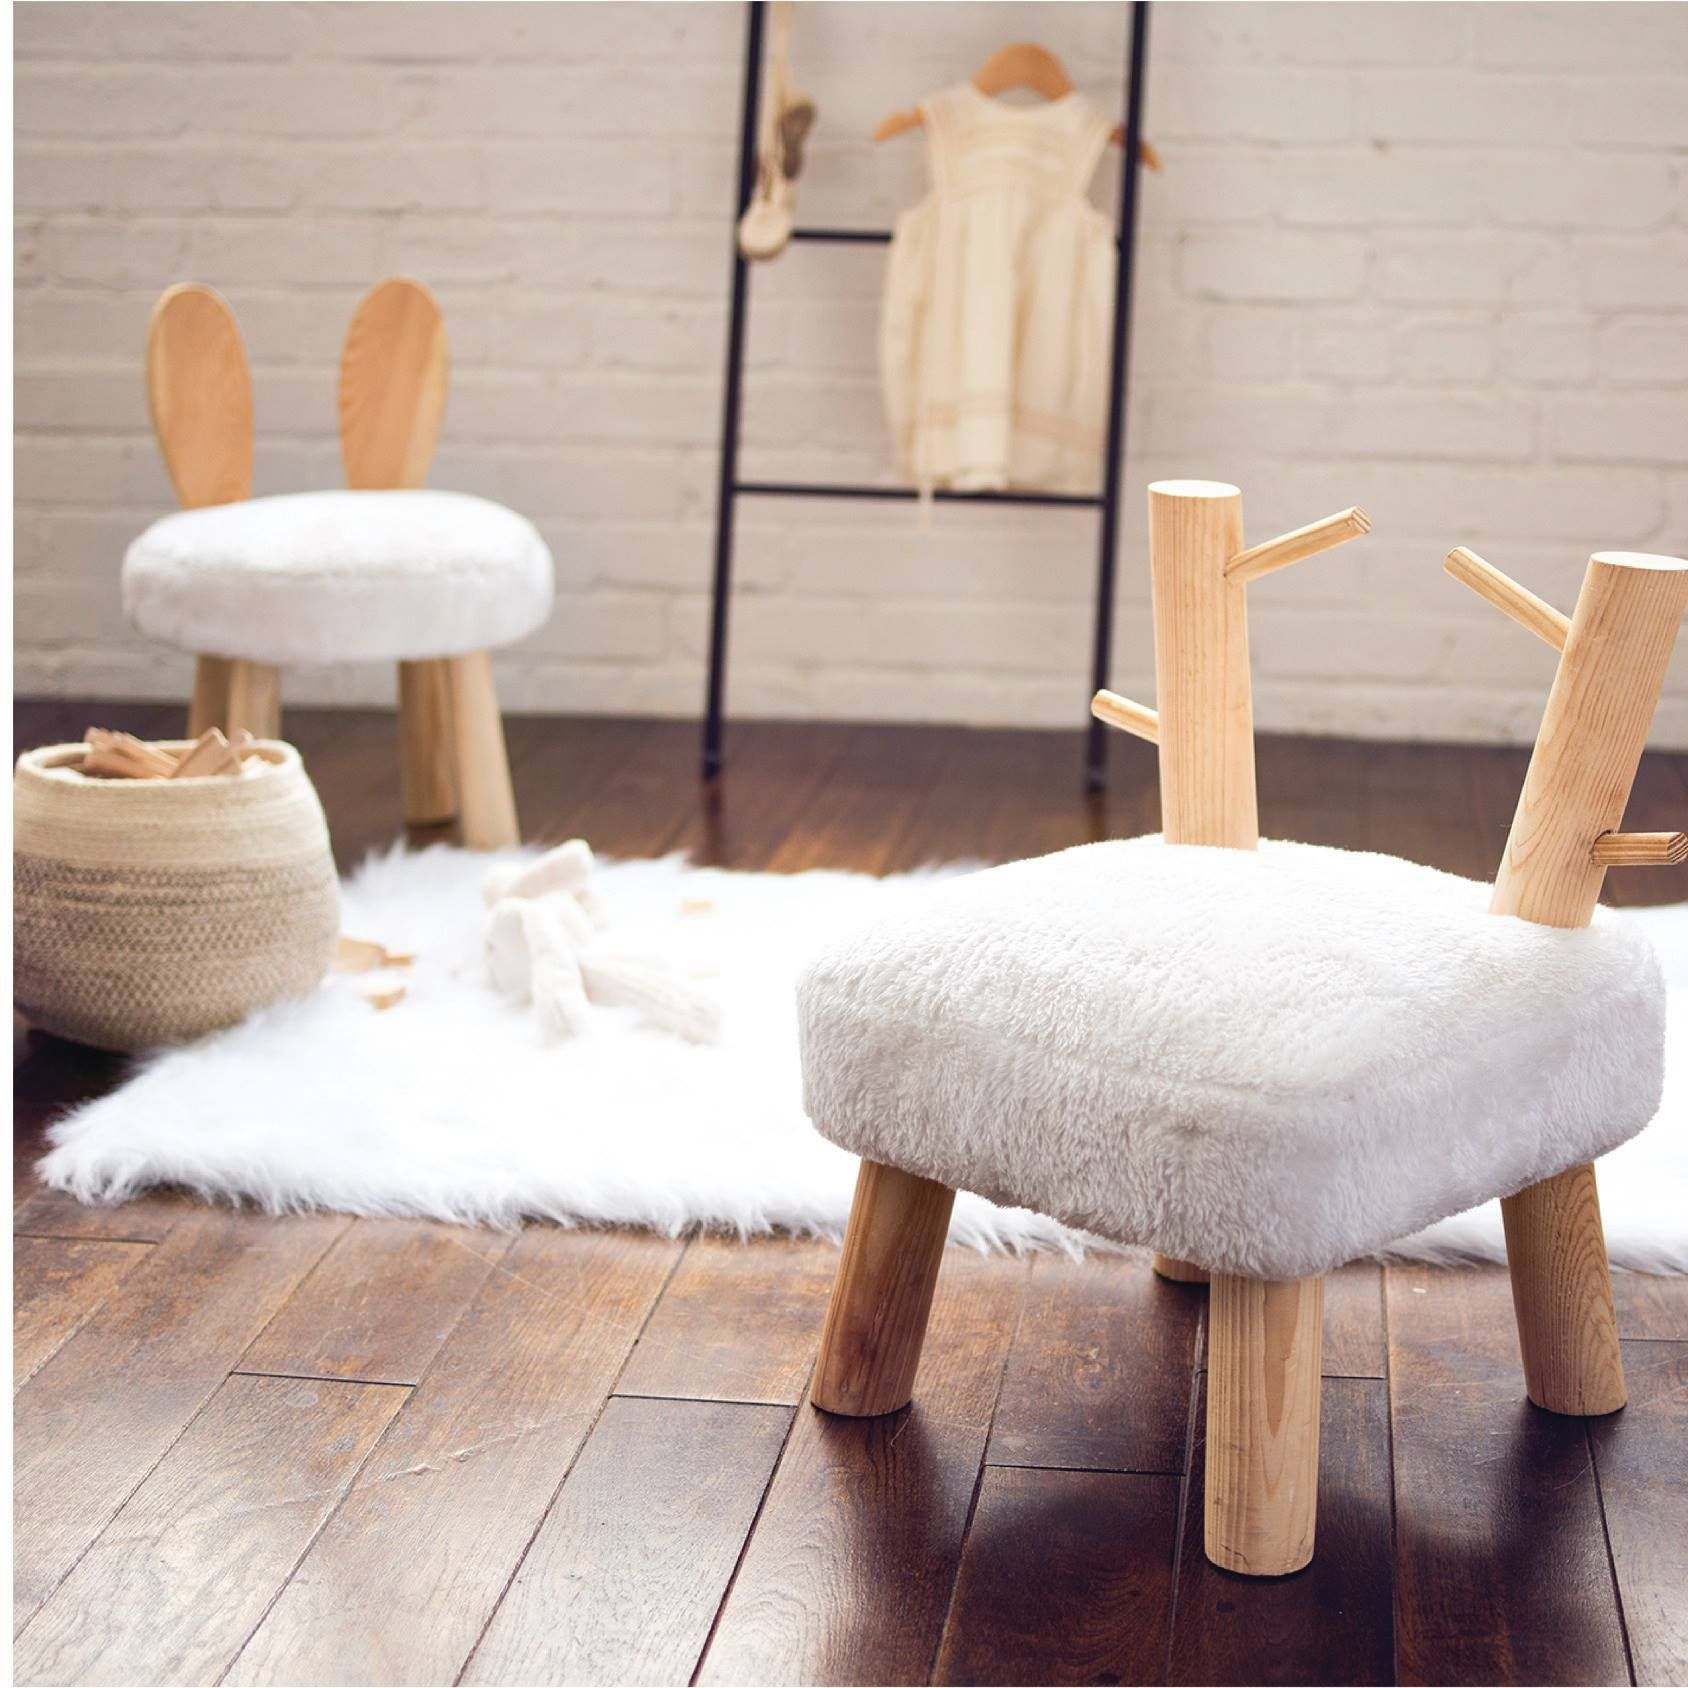 Stupendous 2018 Design Trend Mixed Materials We Love This Wood Stool Cjindustries Chair Design For Home Cjindustriesco